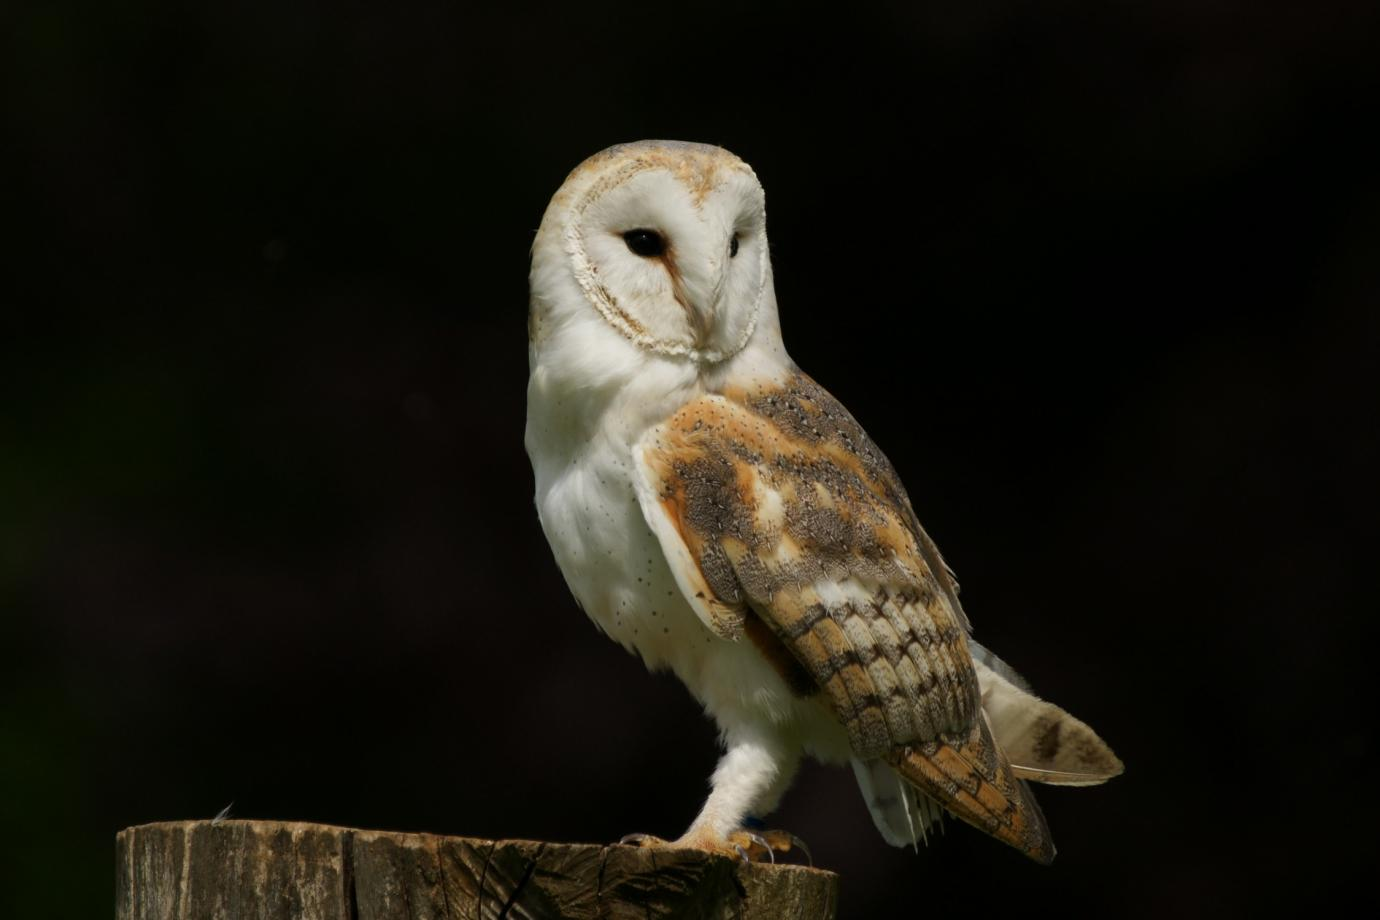 Barn Owl - Facts, Pictures, Diet, Breeding, Habitat ...